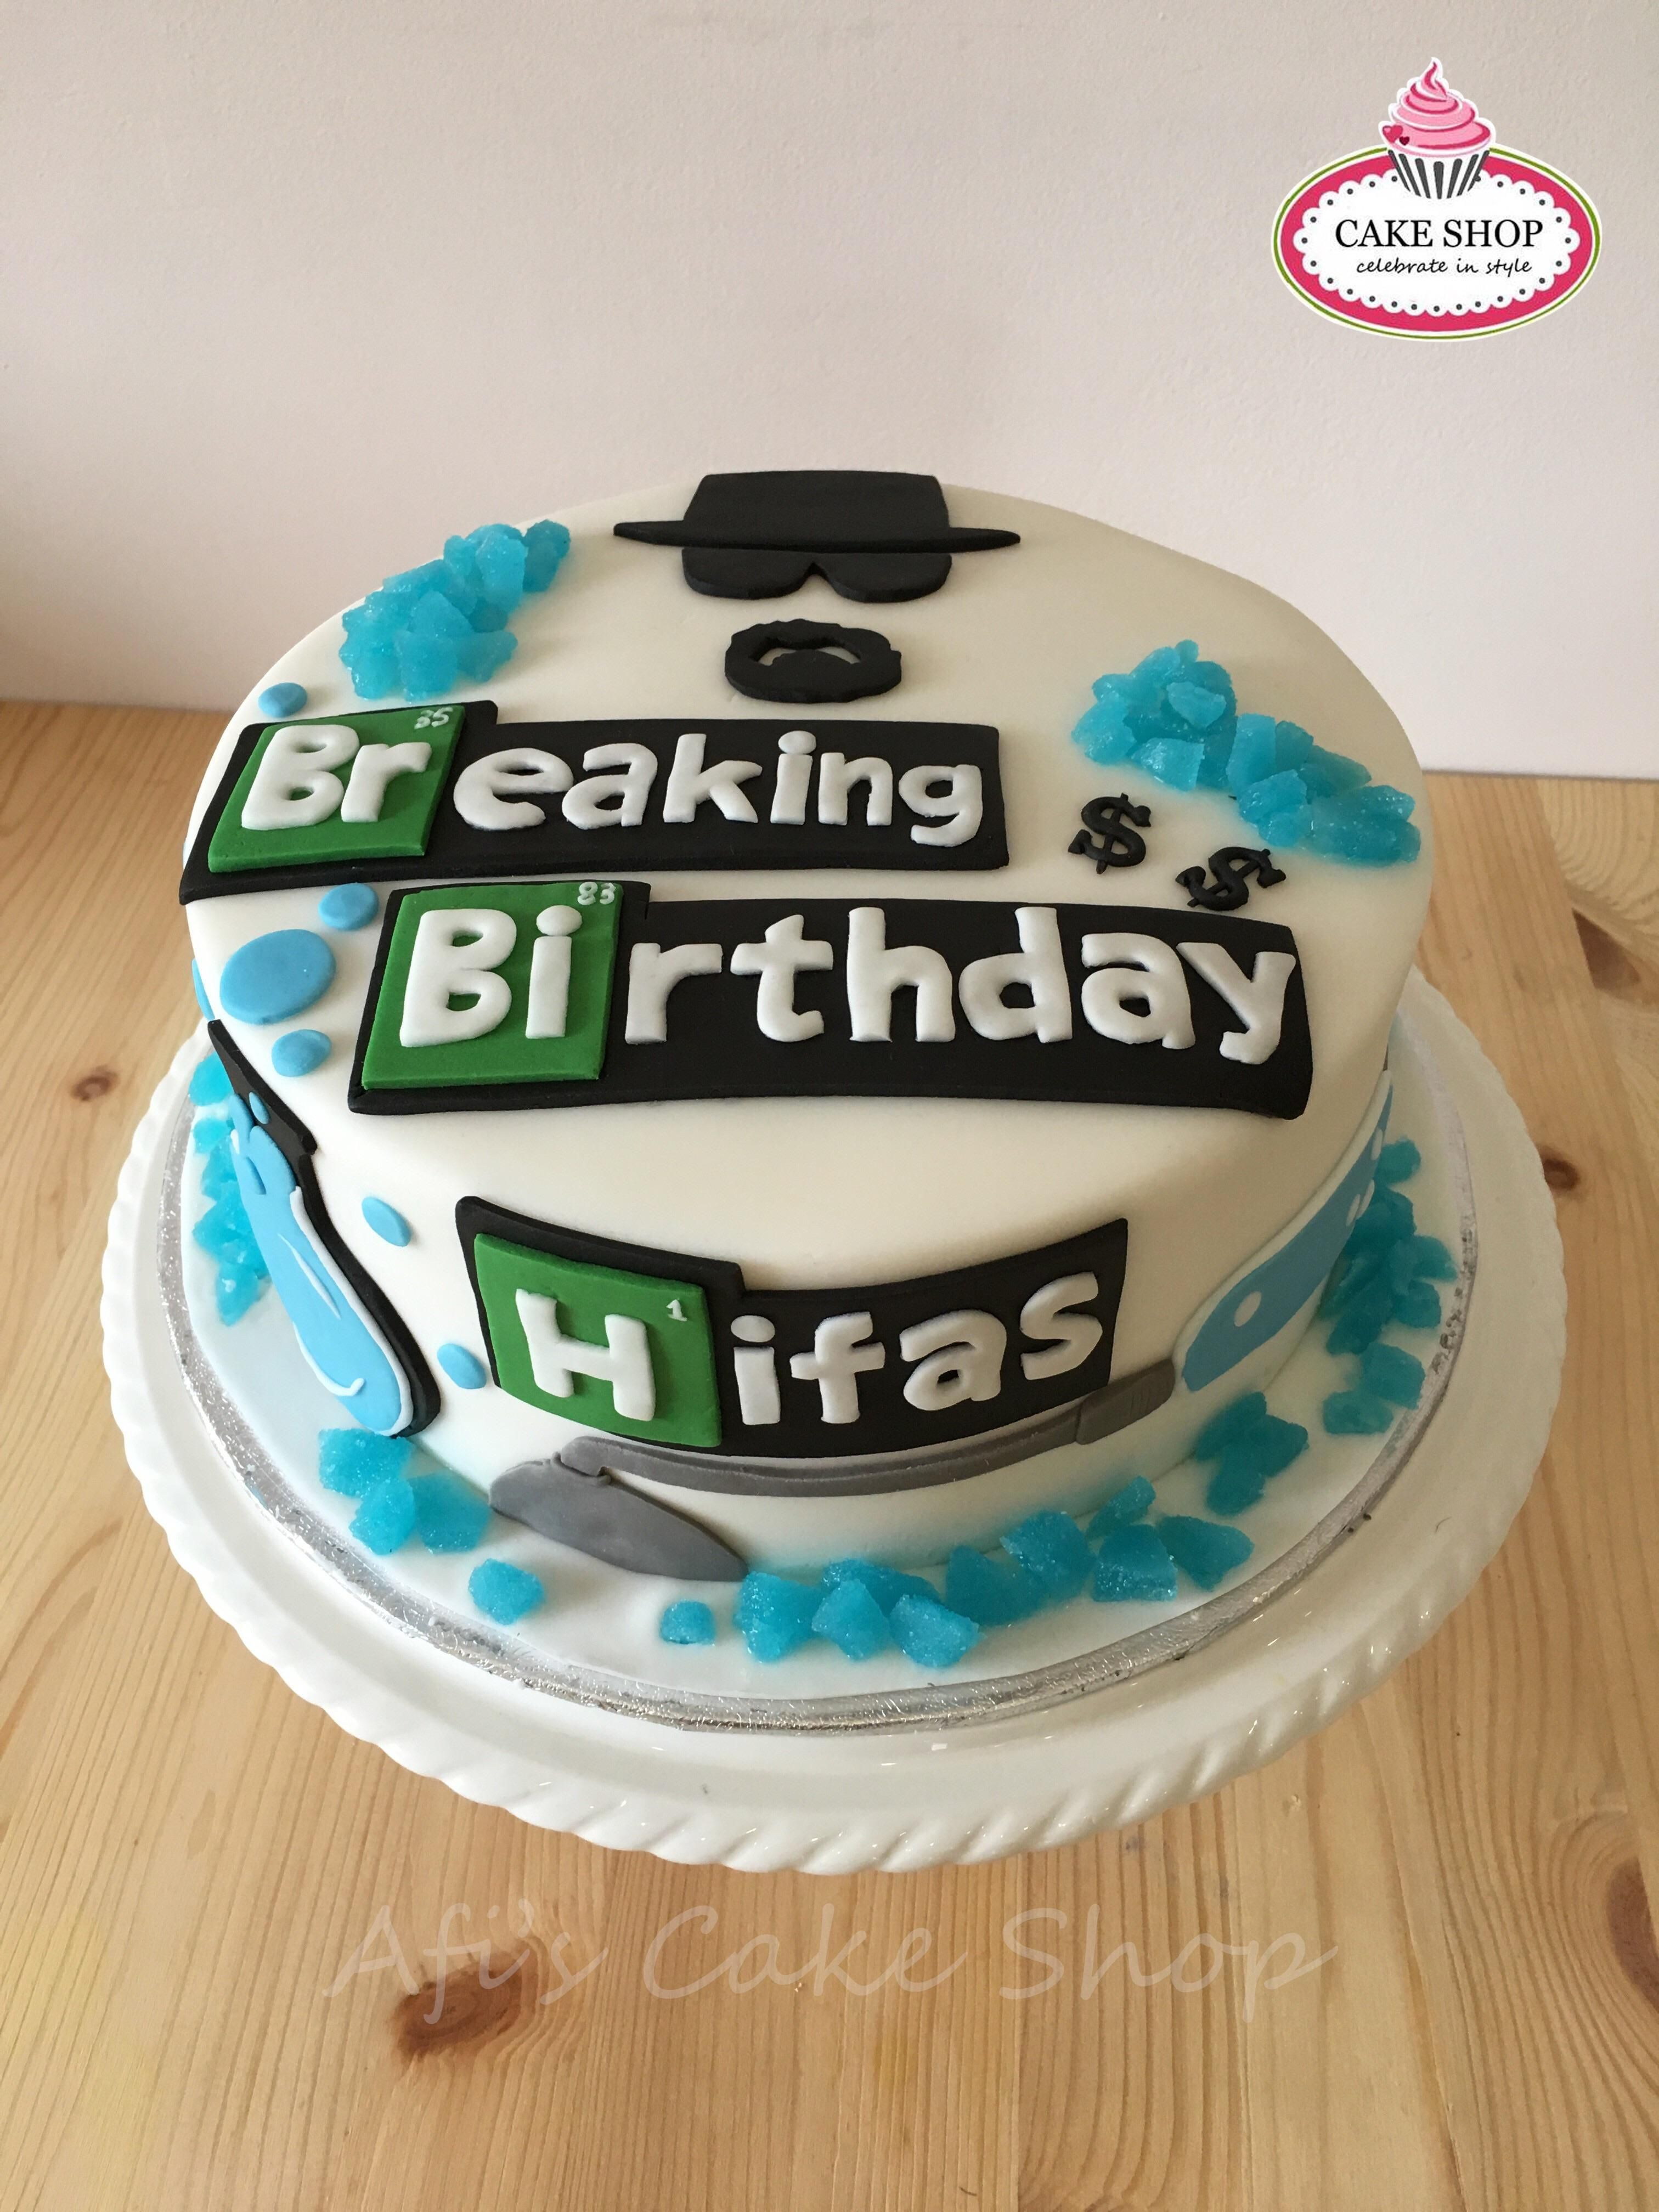 Bad Birthday Cakes : birthday, cakes, Pro/Chef], Breaking, Themed, Birthday, Made., #recipes, #food, #cooking, #delicious, #foodie, #foodrecipes…, Cake,, Birthday,